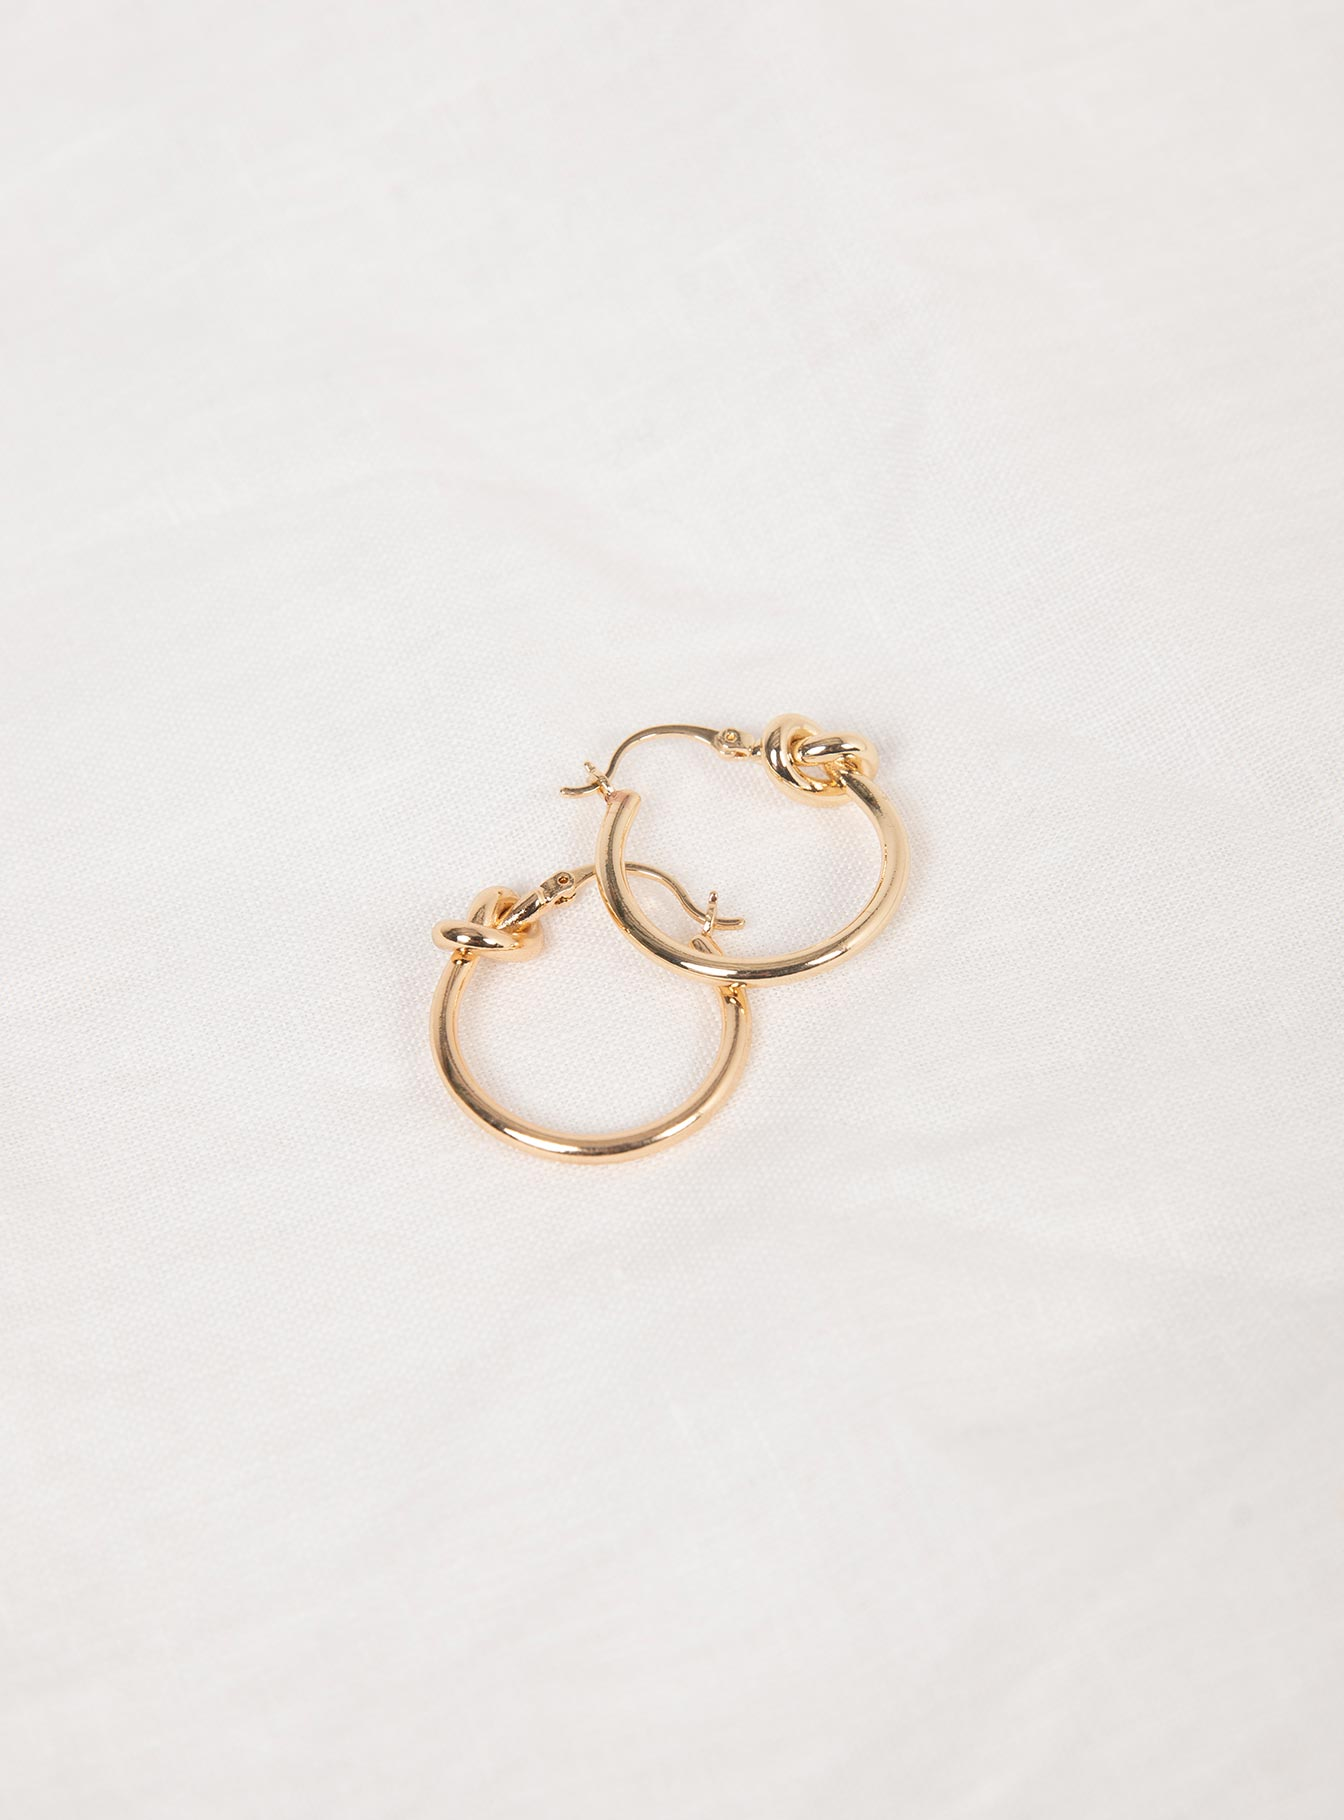 Knotted Gold Hoops